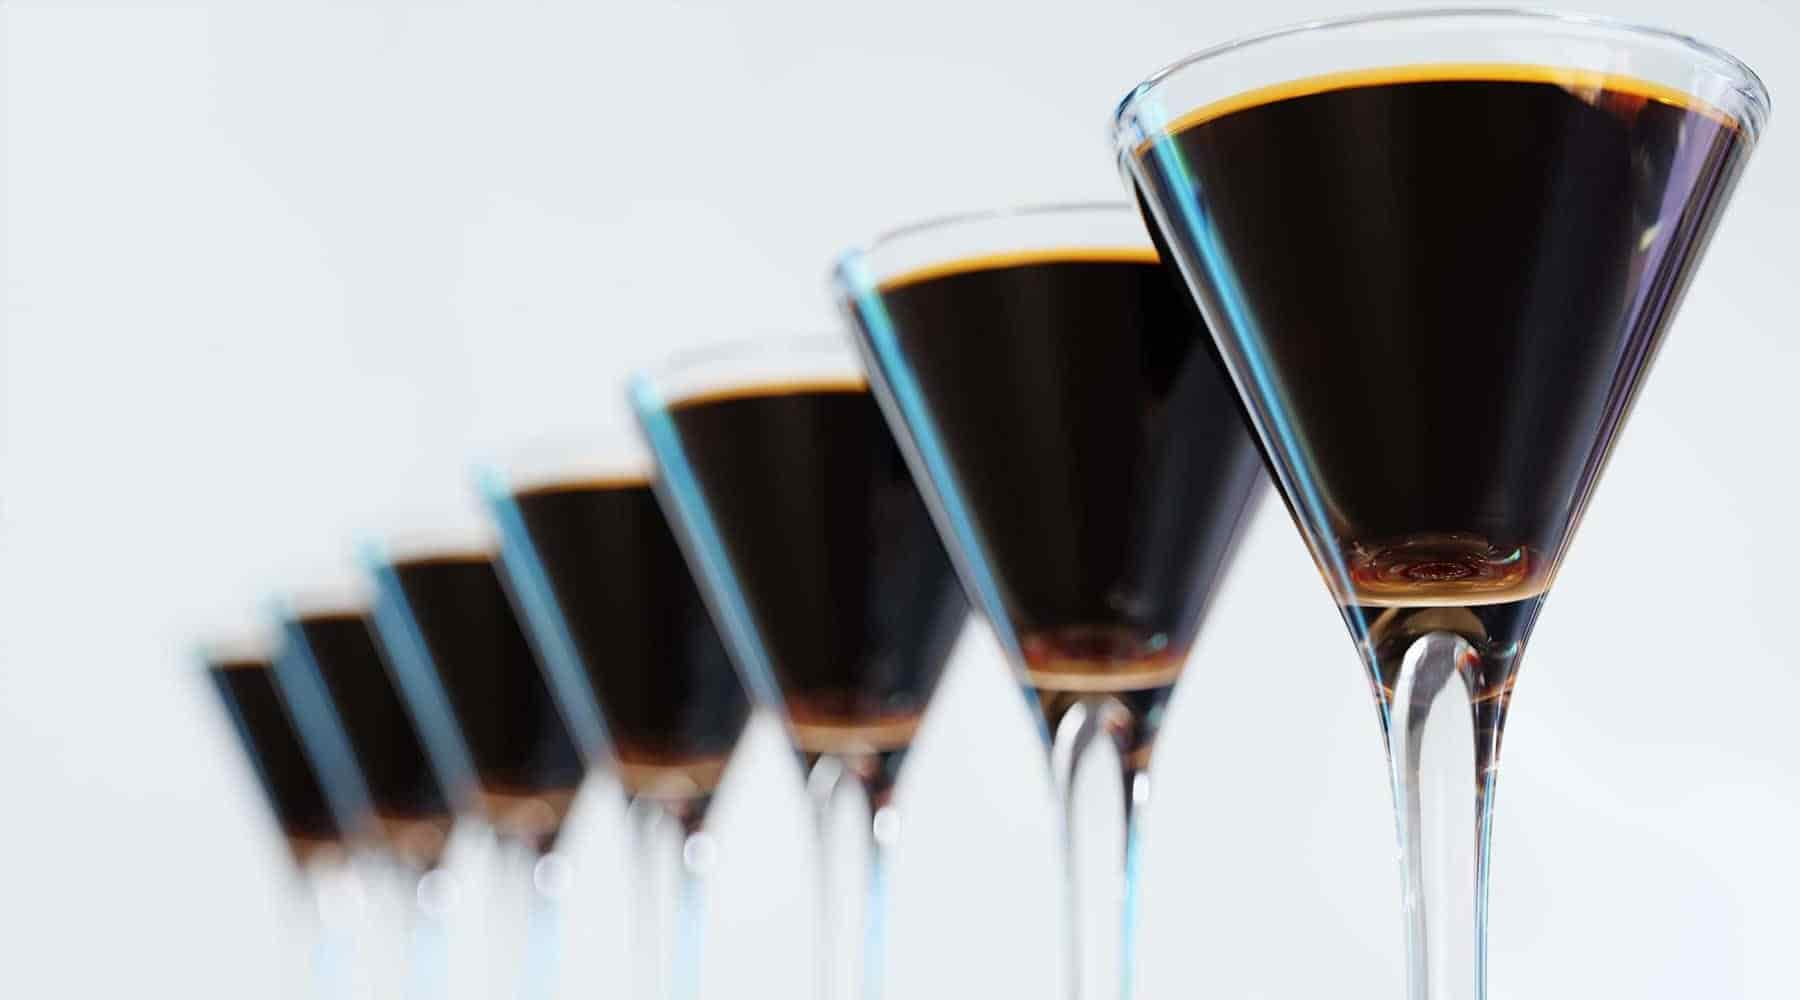 A line of Espresso Martini